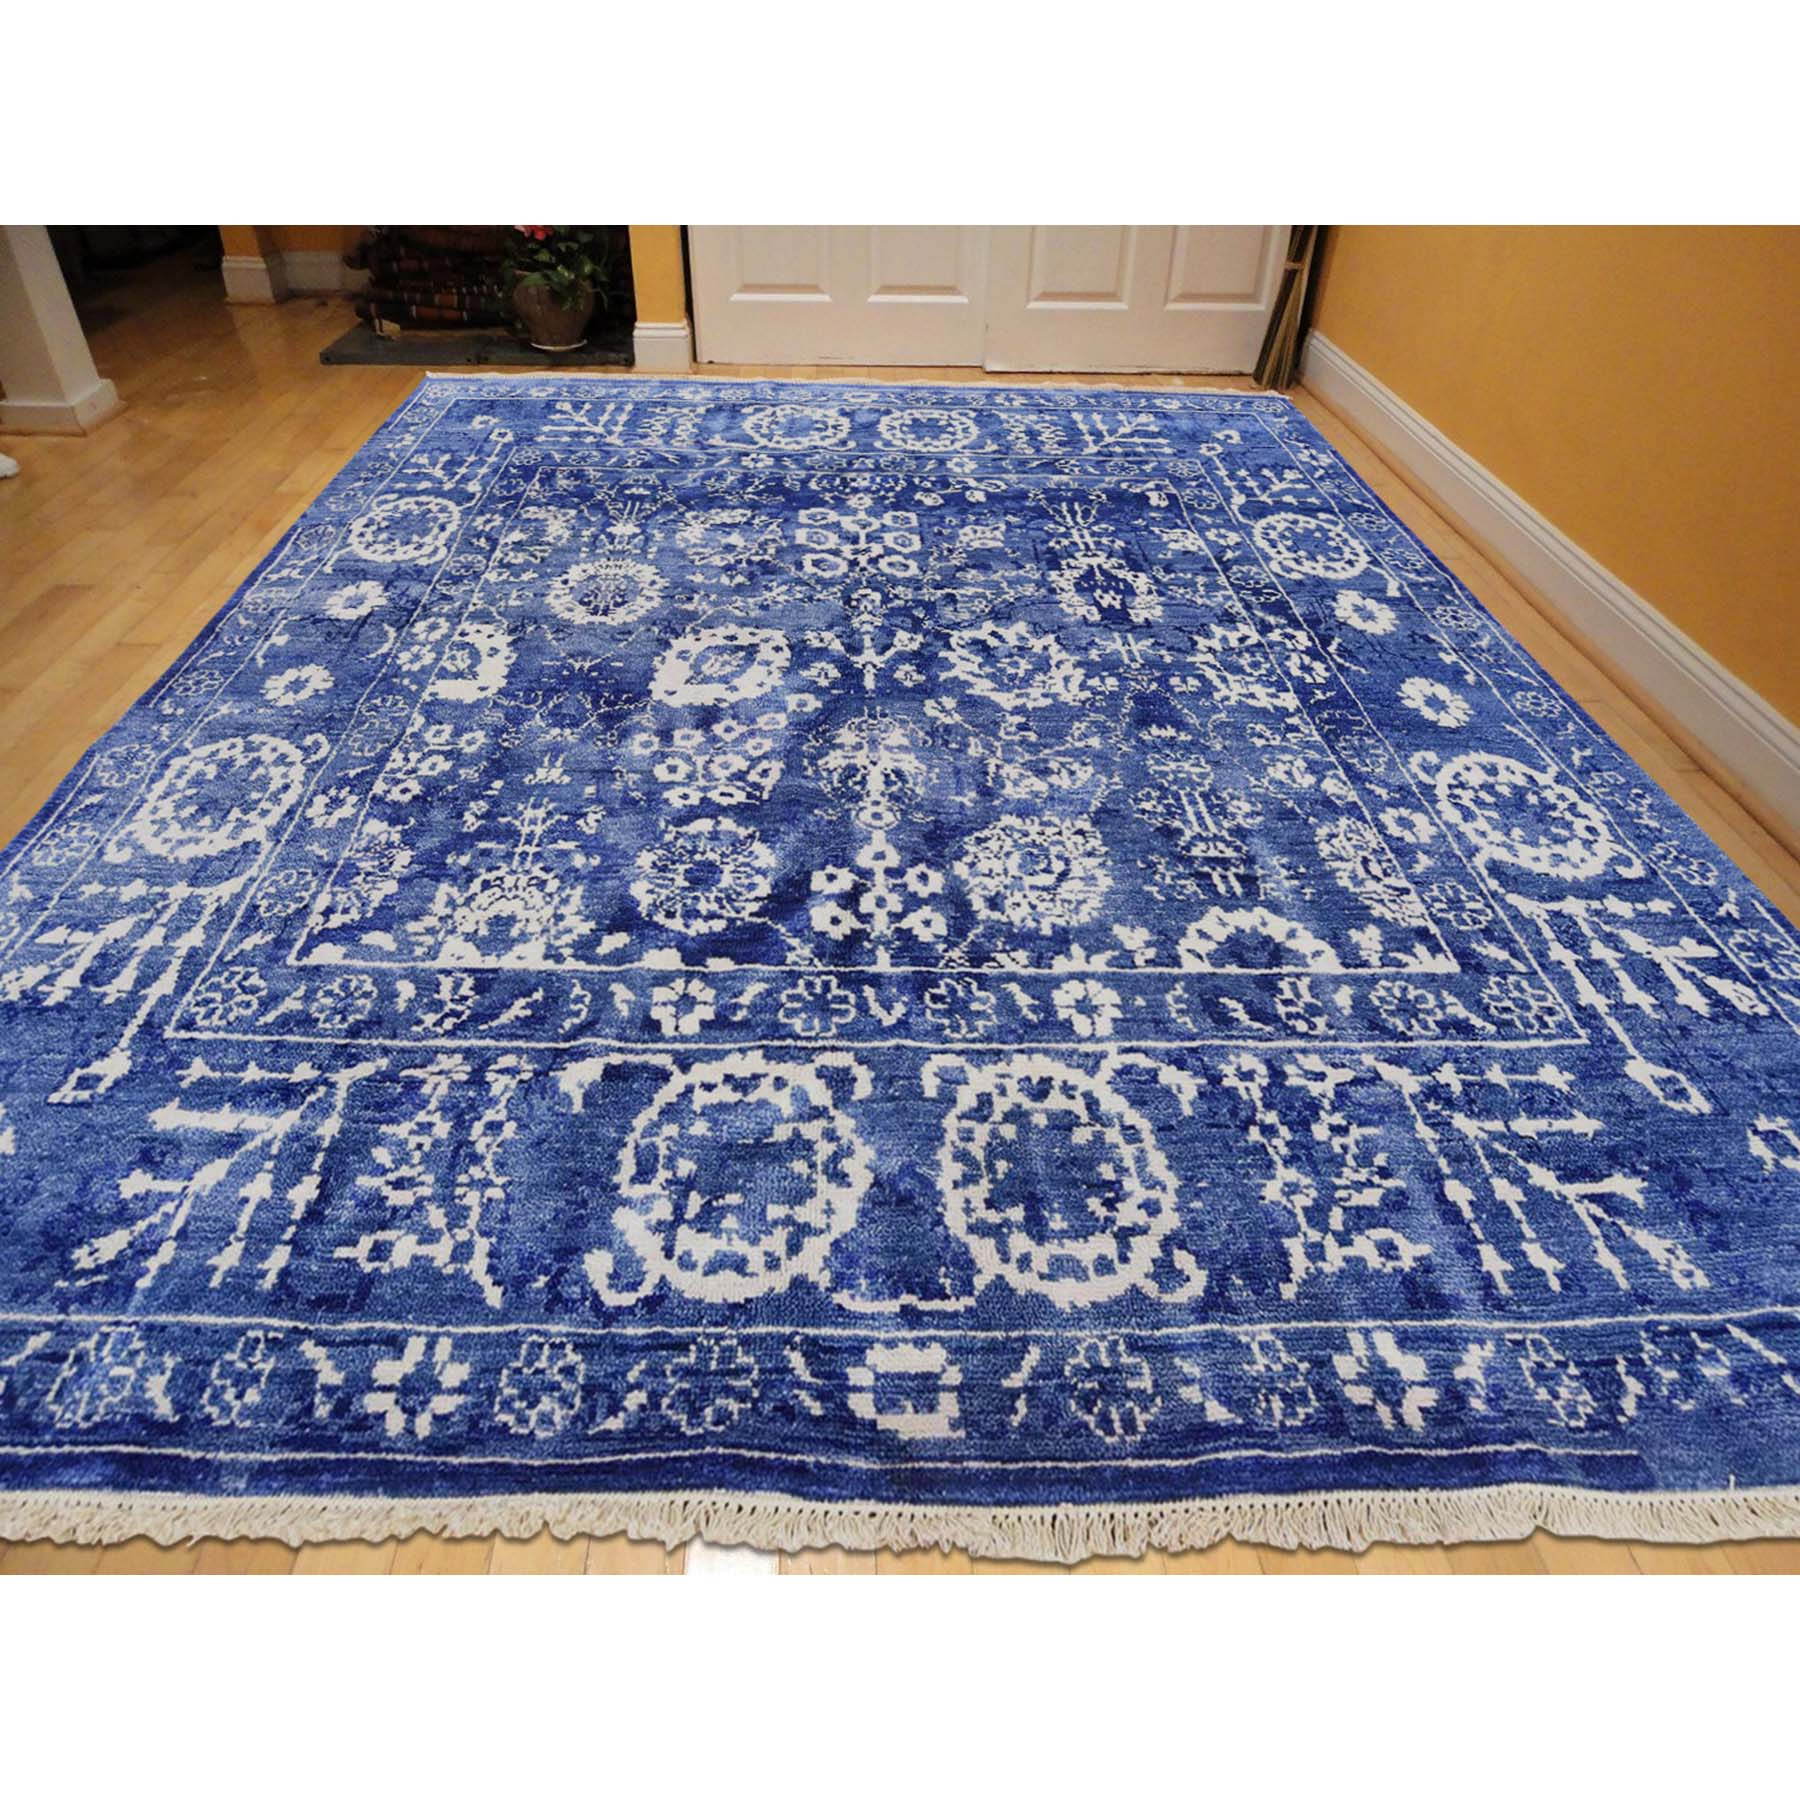 5-1 x5-1  Hand-Knotted Wool and Silk Tone on Tone Square Tabriz  Oriental Rug